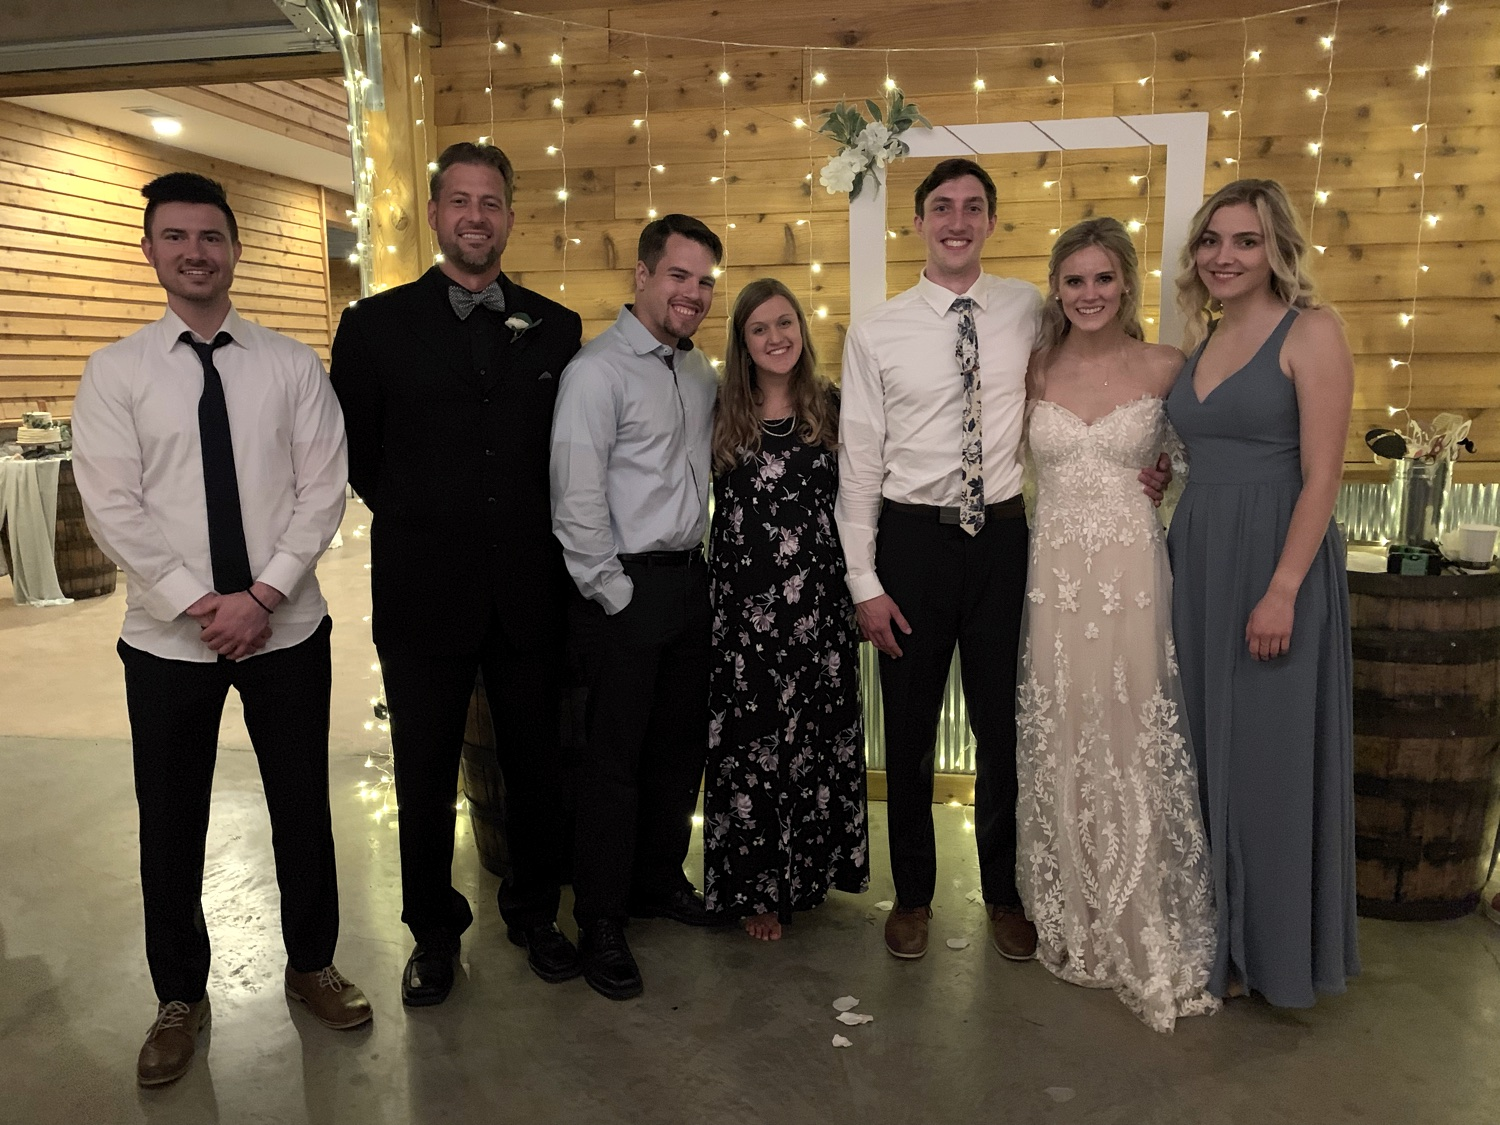 What better place is there to reconnect with old Team Yeshua friends than at a wedding? From L to R: Jay Lems (2016, 2017), Jesse Boyd, Eric Trent (2015), Mindy Trent (2015, 2016), Kyle Stengel (2016, 2017), Alexis Stengel (2015, 2017), and Emile Petruk (2015).